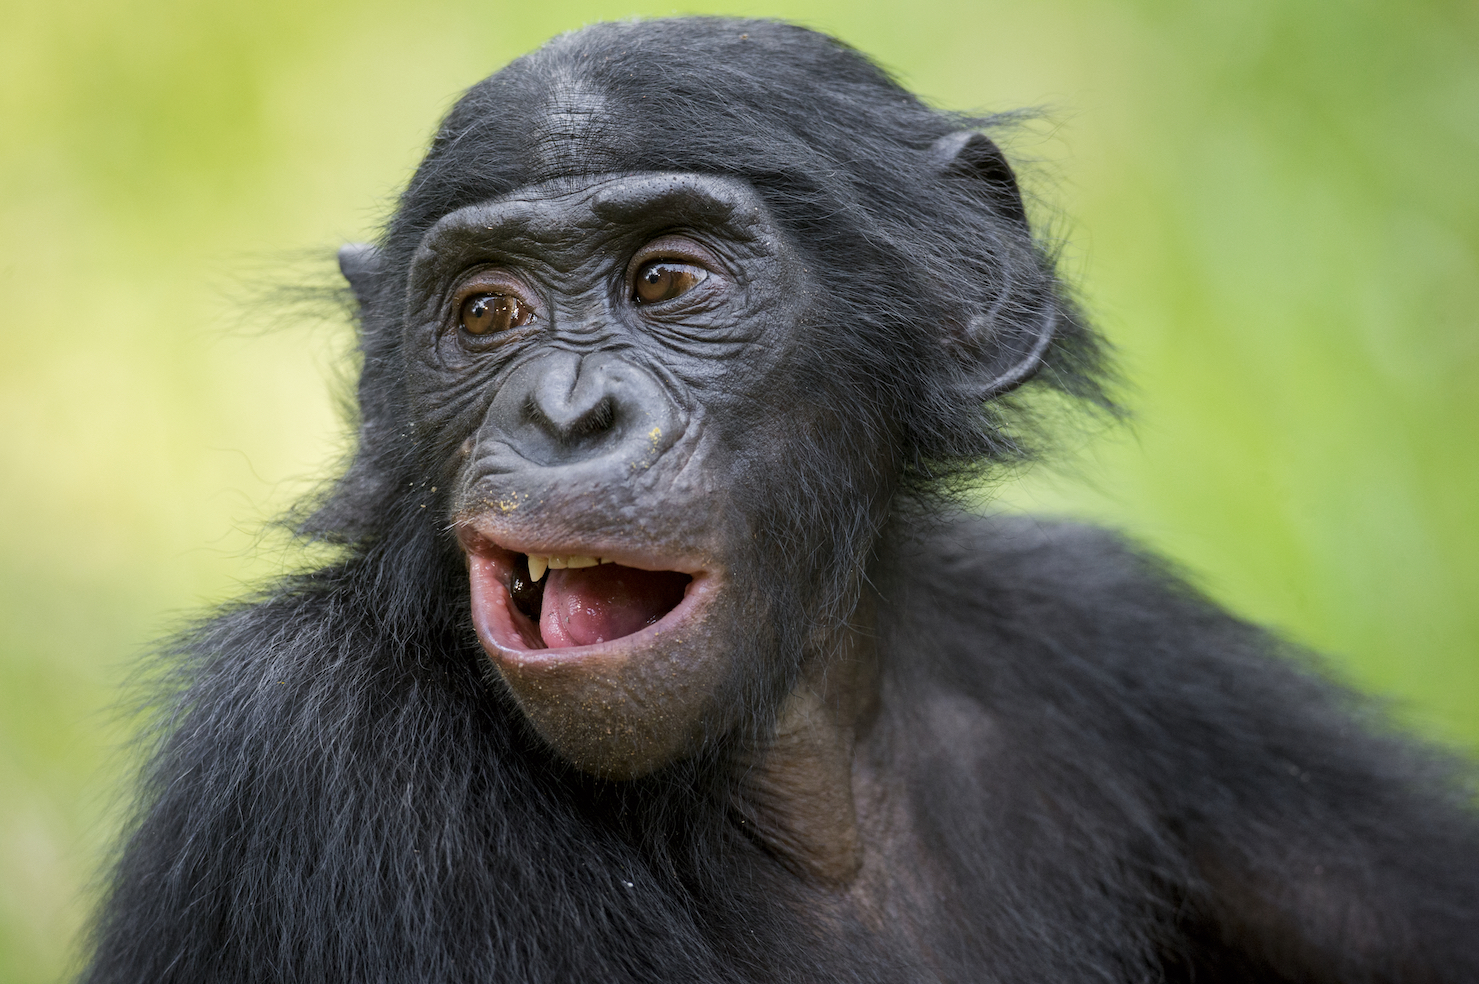 A new study from University of Birmingham and Durham University found that humans and bonobos mimic in very different ways.